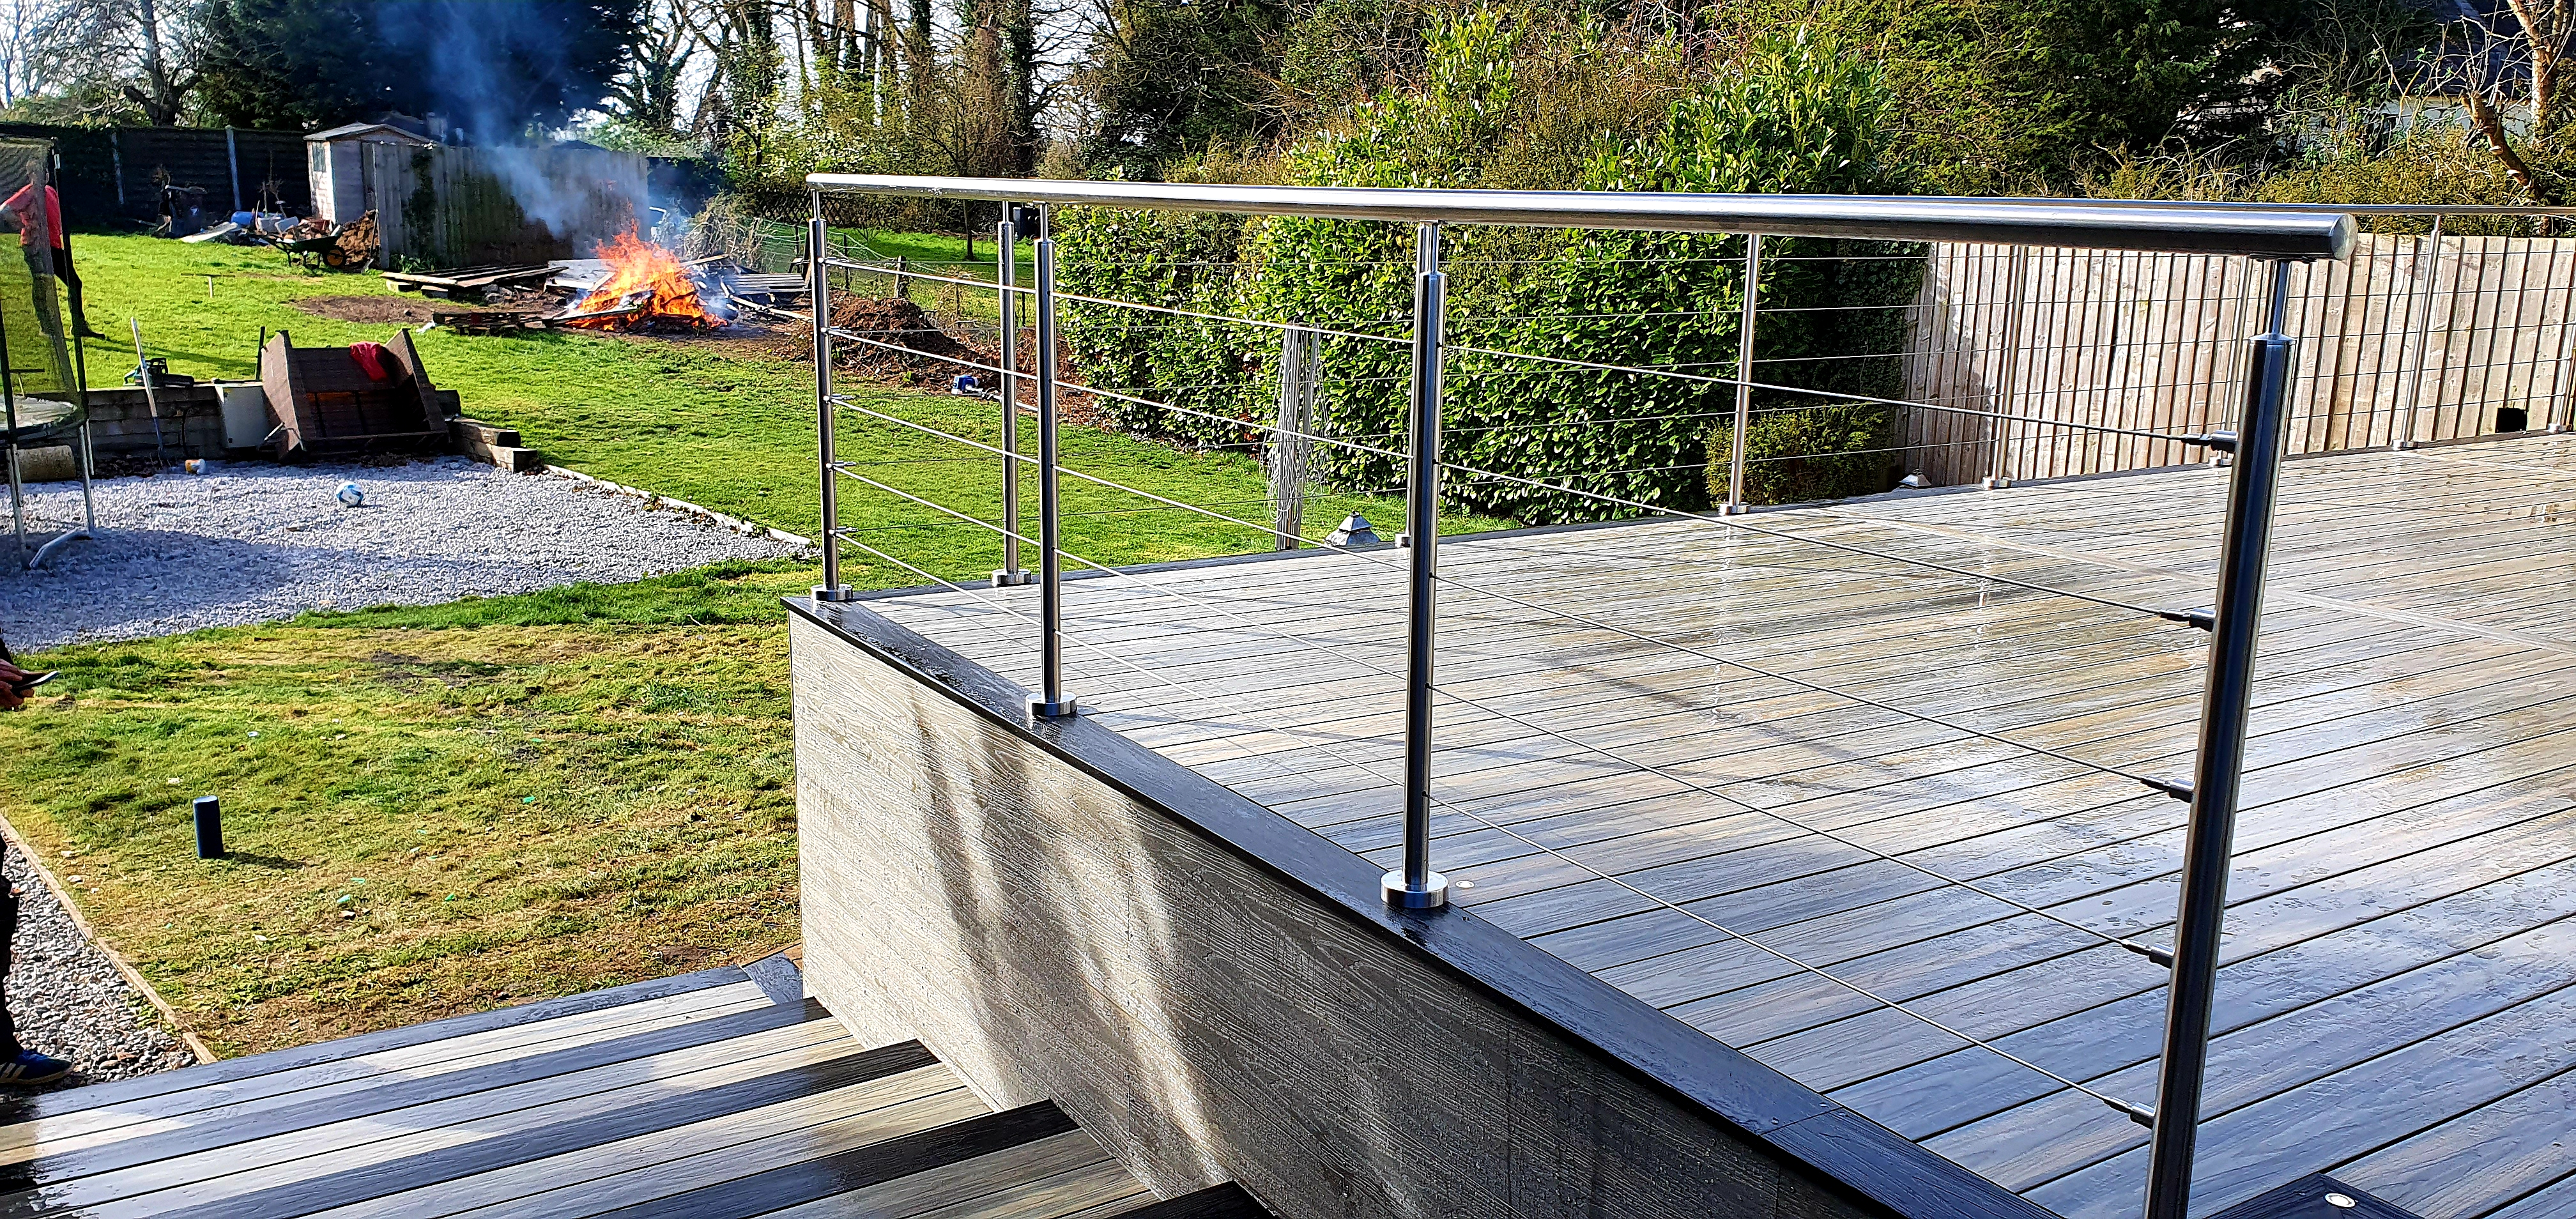 Stainless steel handrail and wires in Dunmow